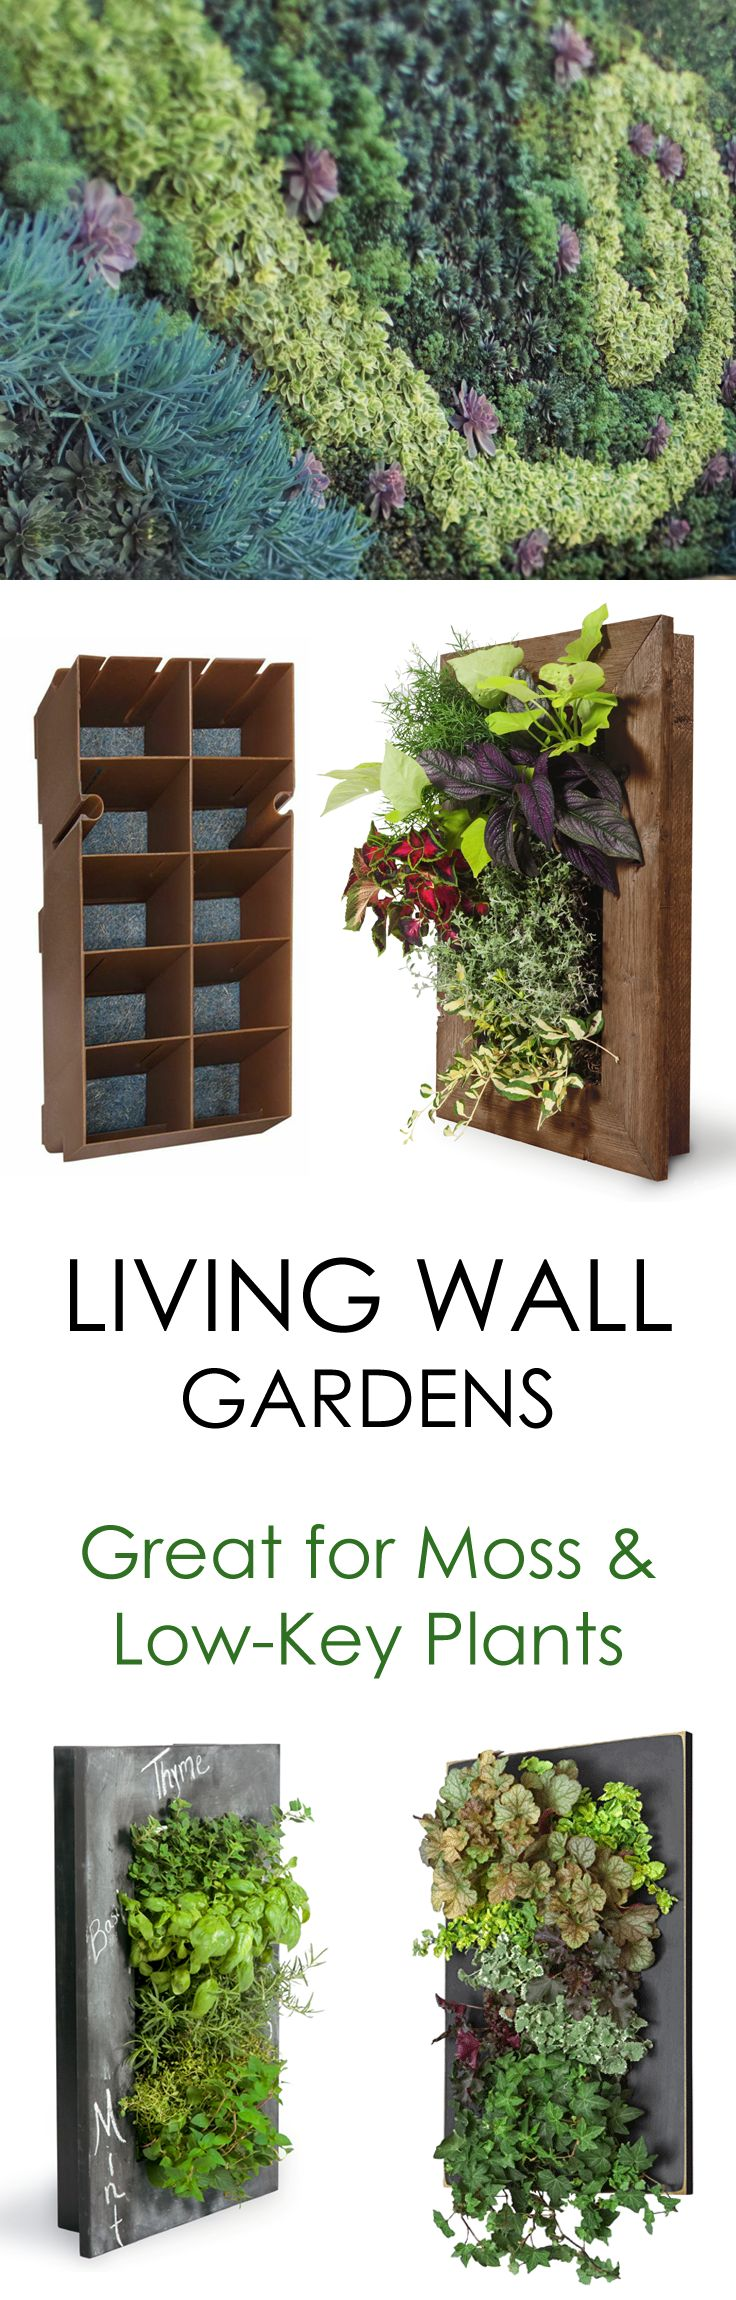 Create a lush moss garden with Urbilis' living wall planters! For extra dimension, accent your moss installation with ivy or ferns!